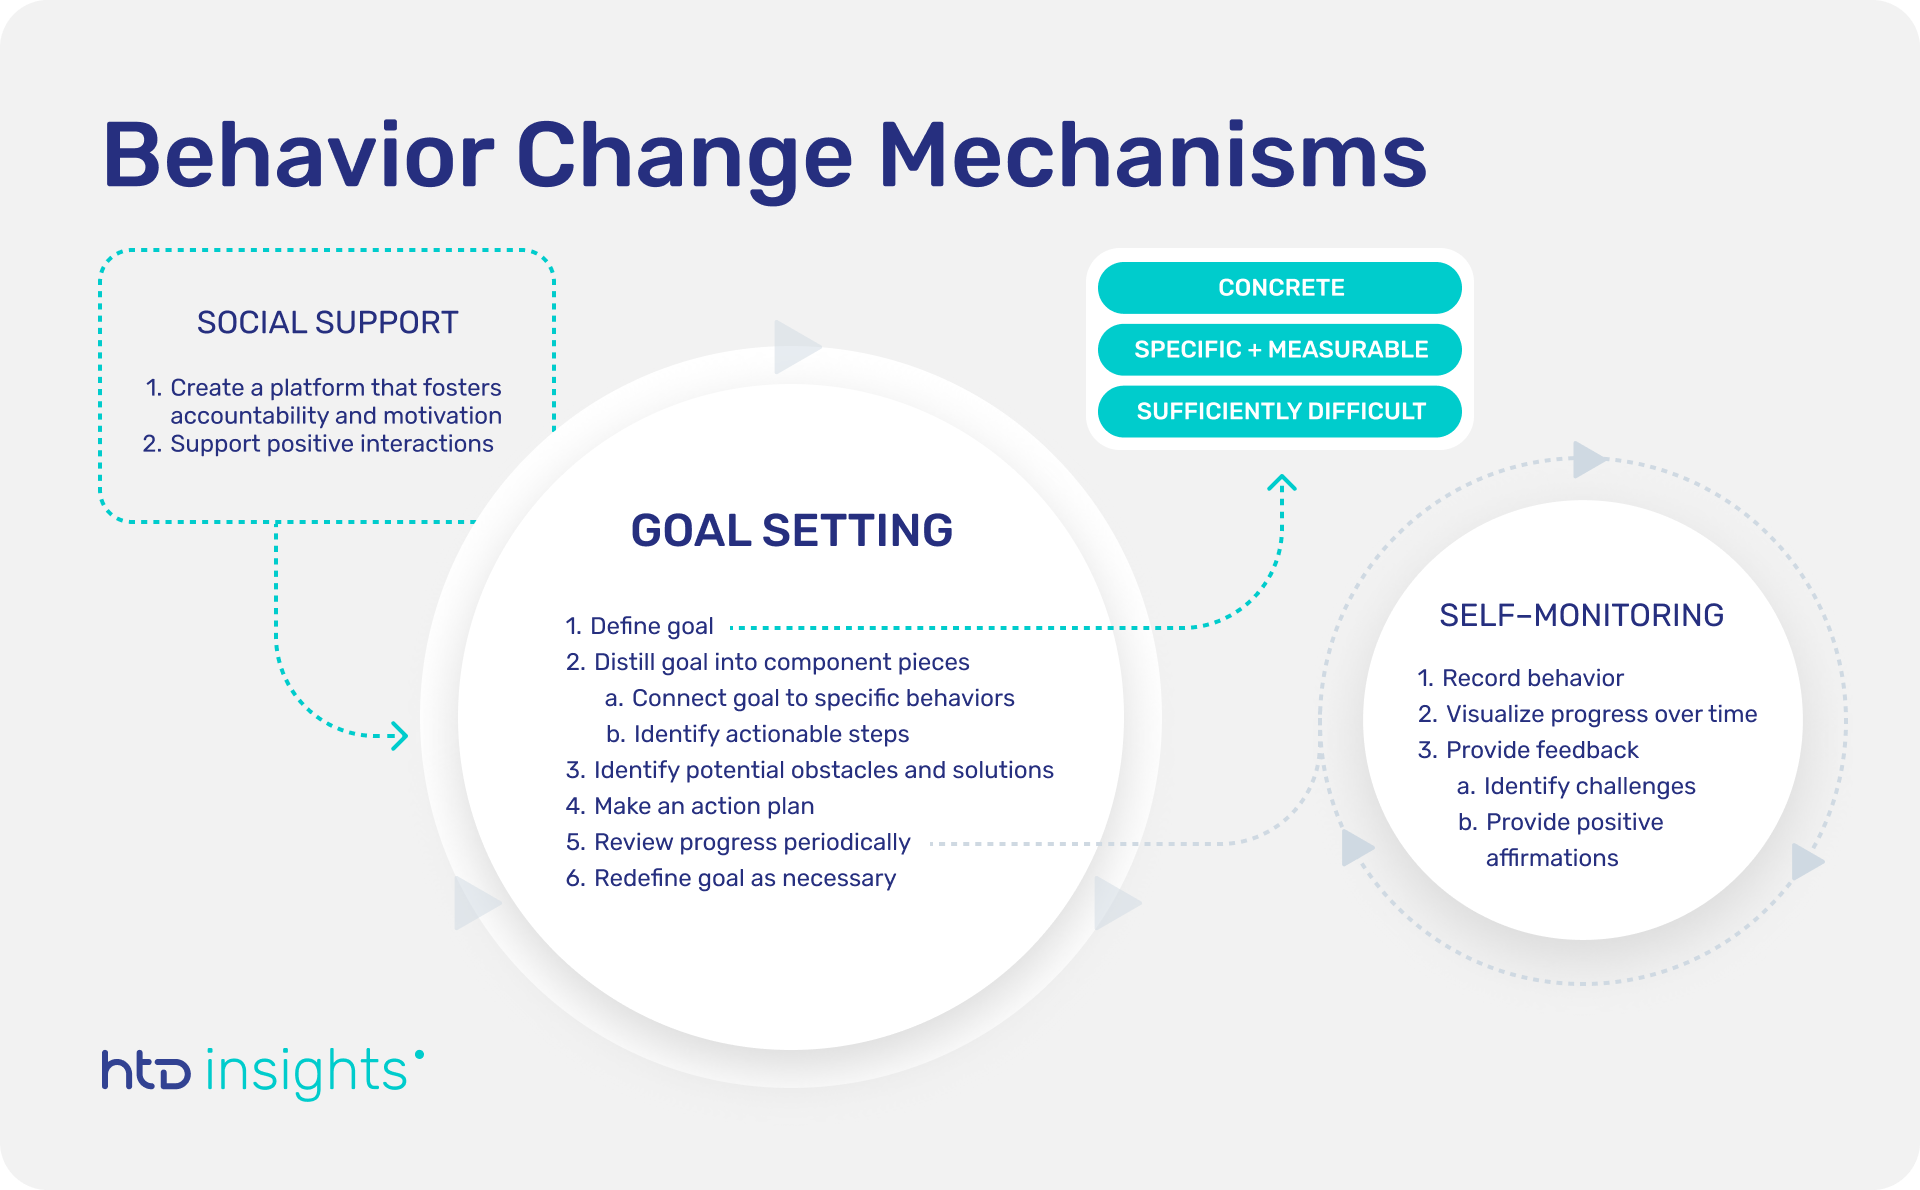 Schematic showing how the three behavior change mechanisms of goal setting, social support, and self-monitoring are interconnected